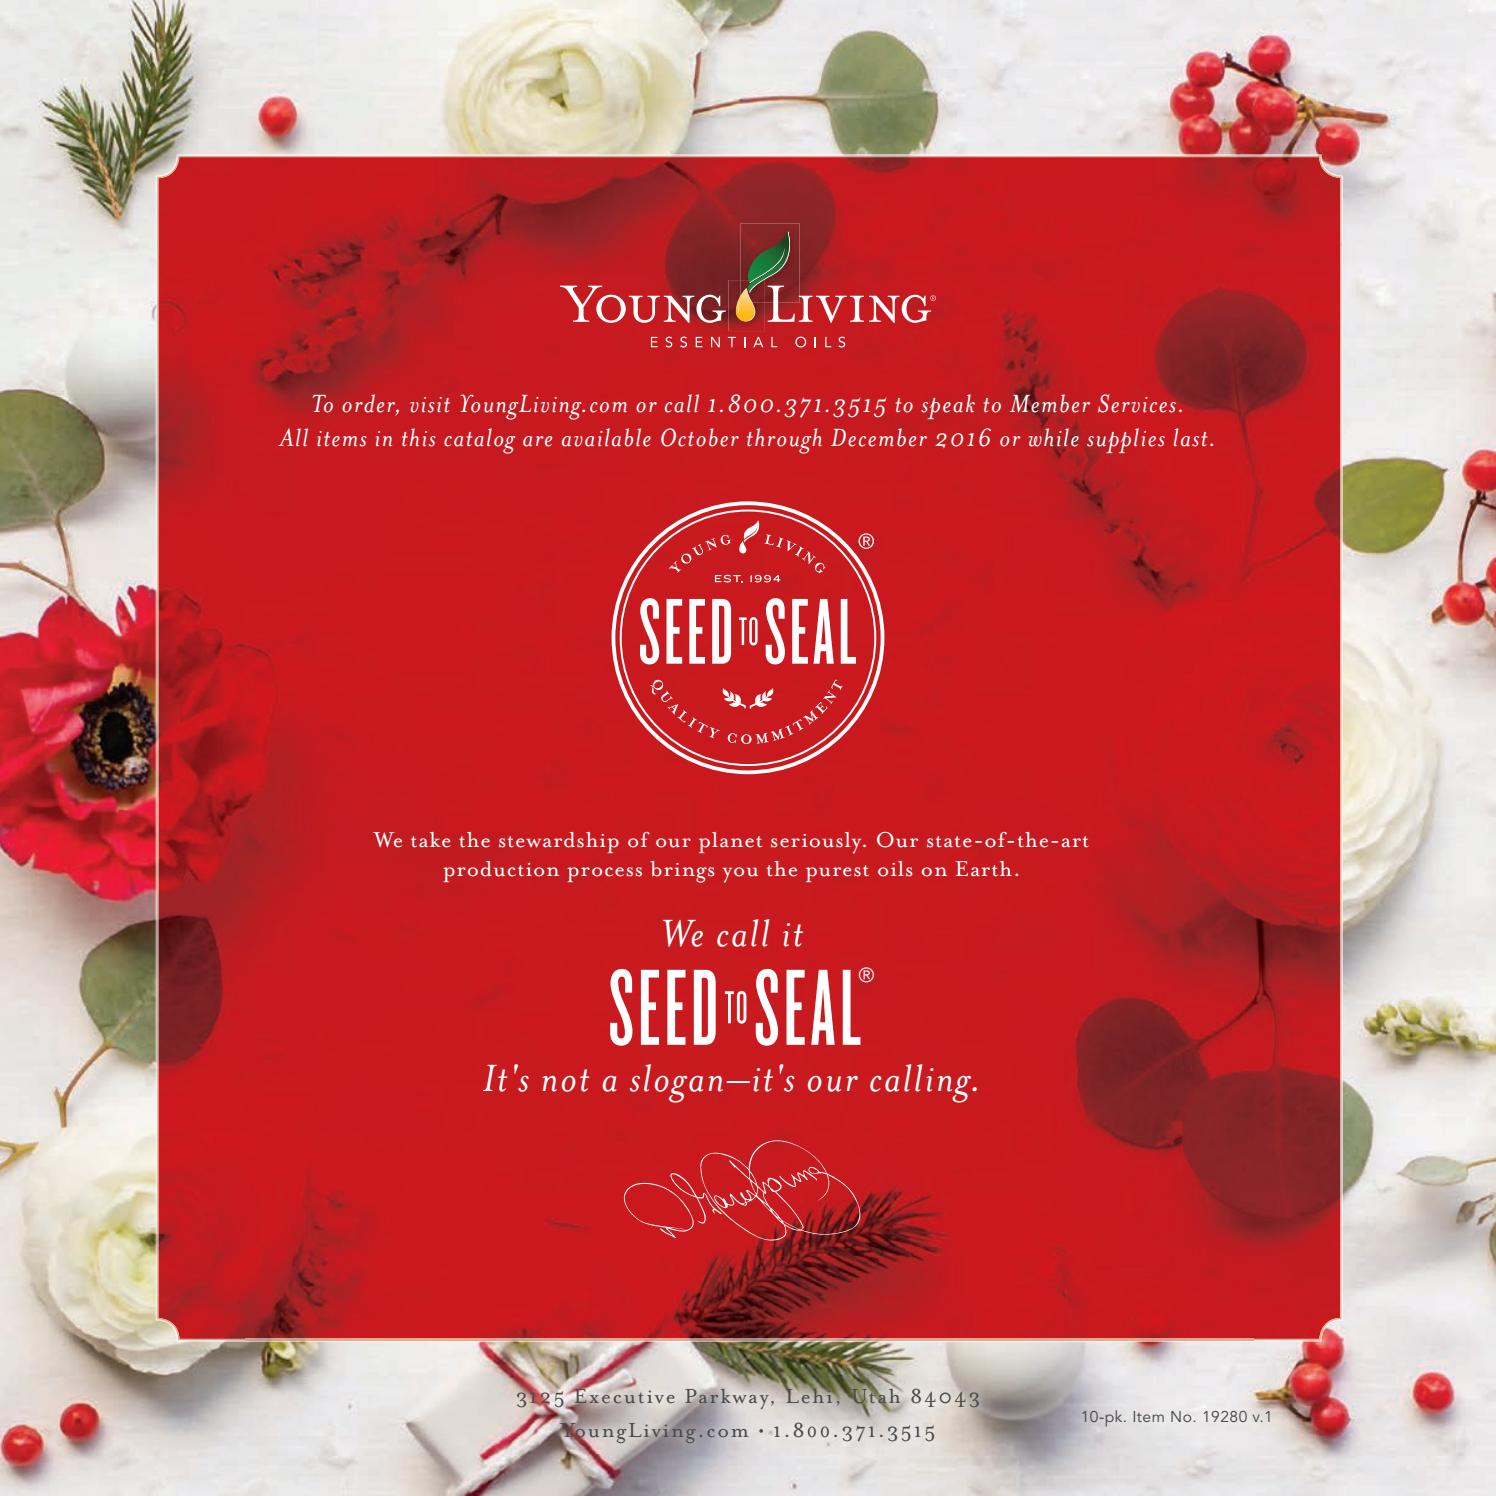 2016 Holiday Catalog by Young Living Essential Oils - issuu